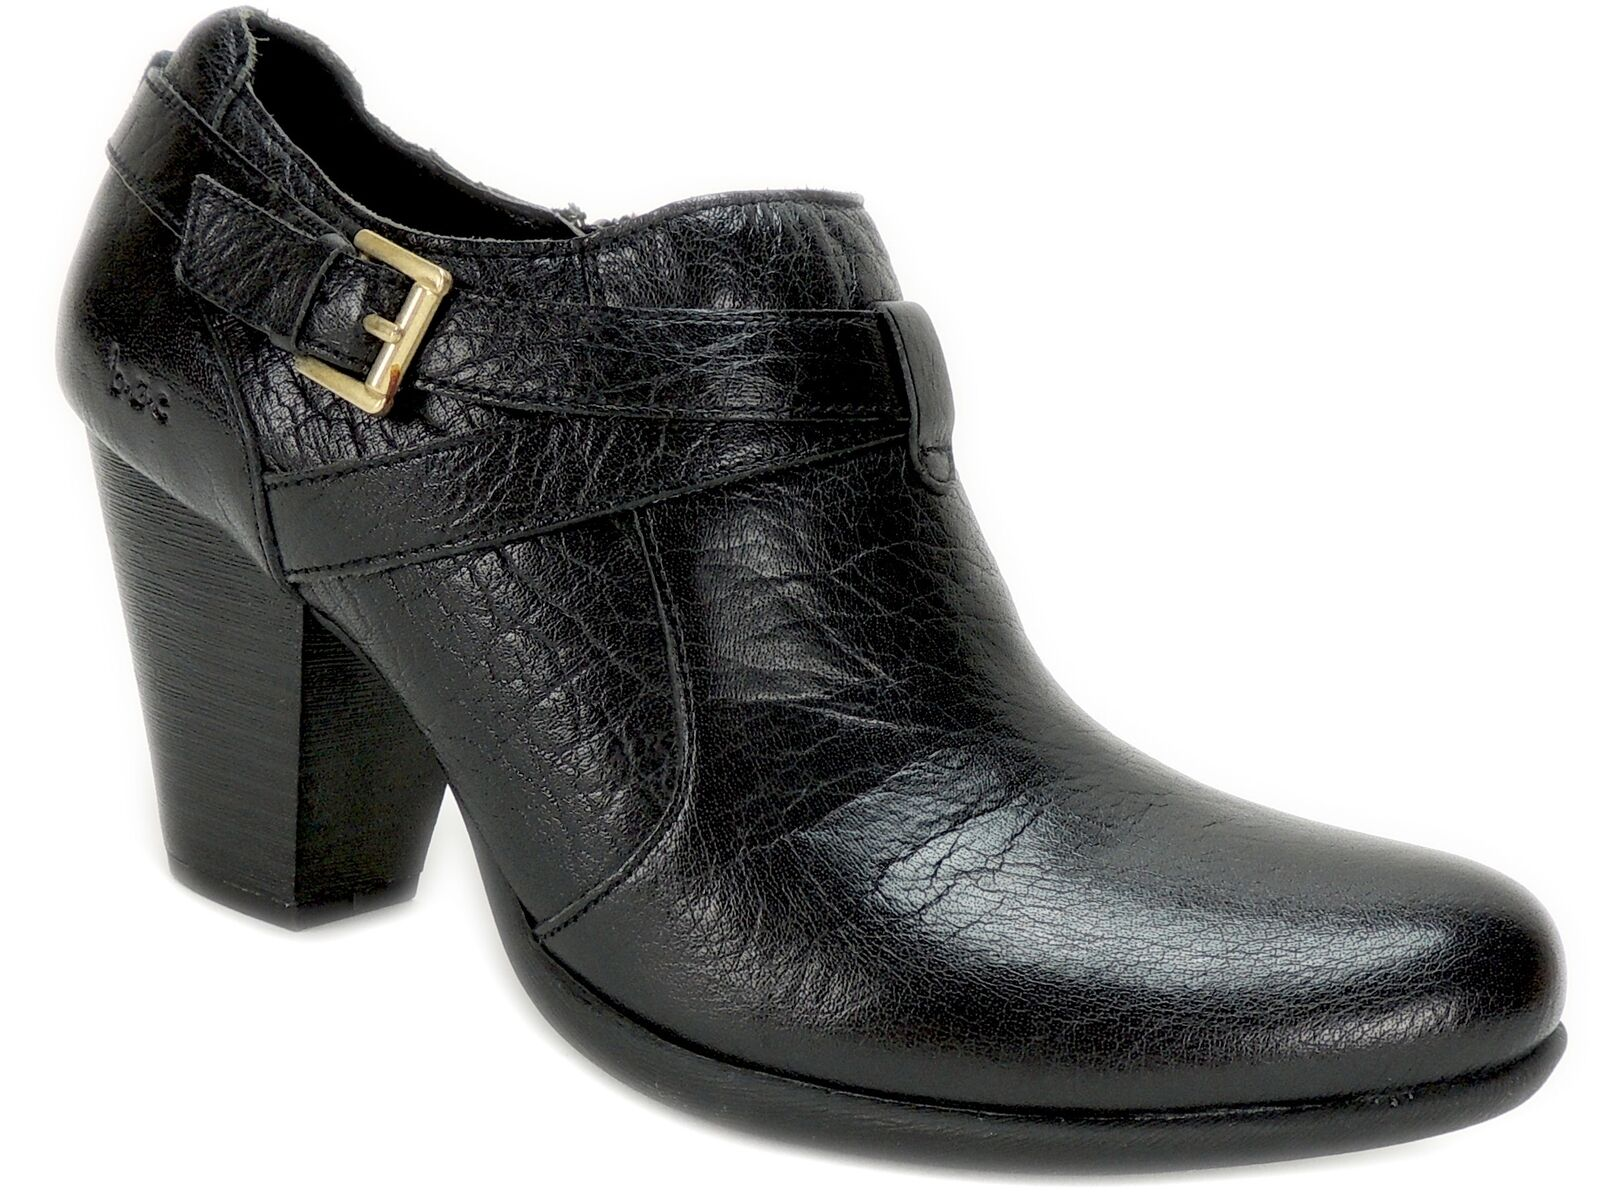 B.o.c. Women's Moore Booties Black Leather Size 10 M